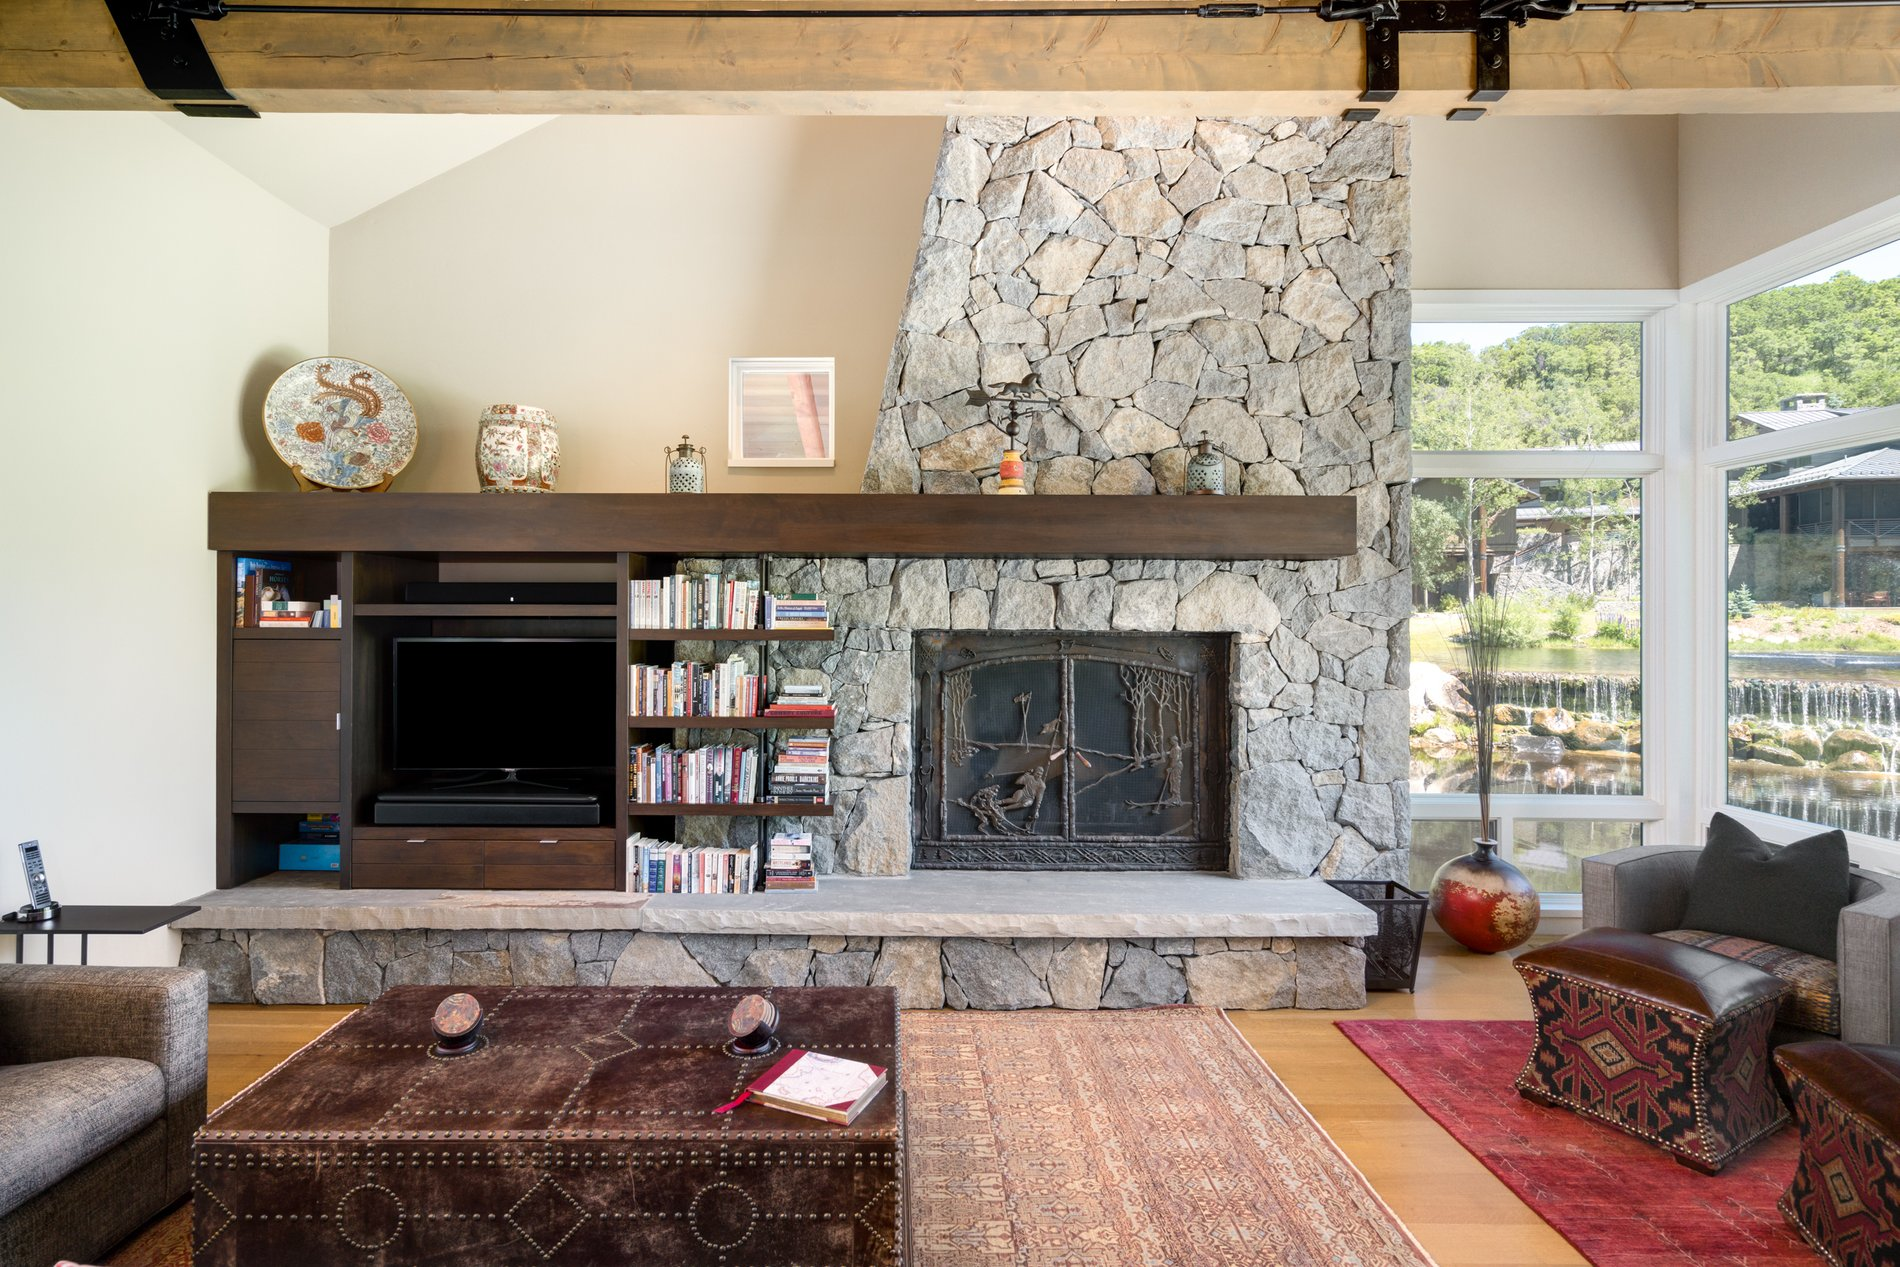 Wood burning fireplace with stone surround.